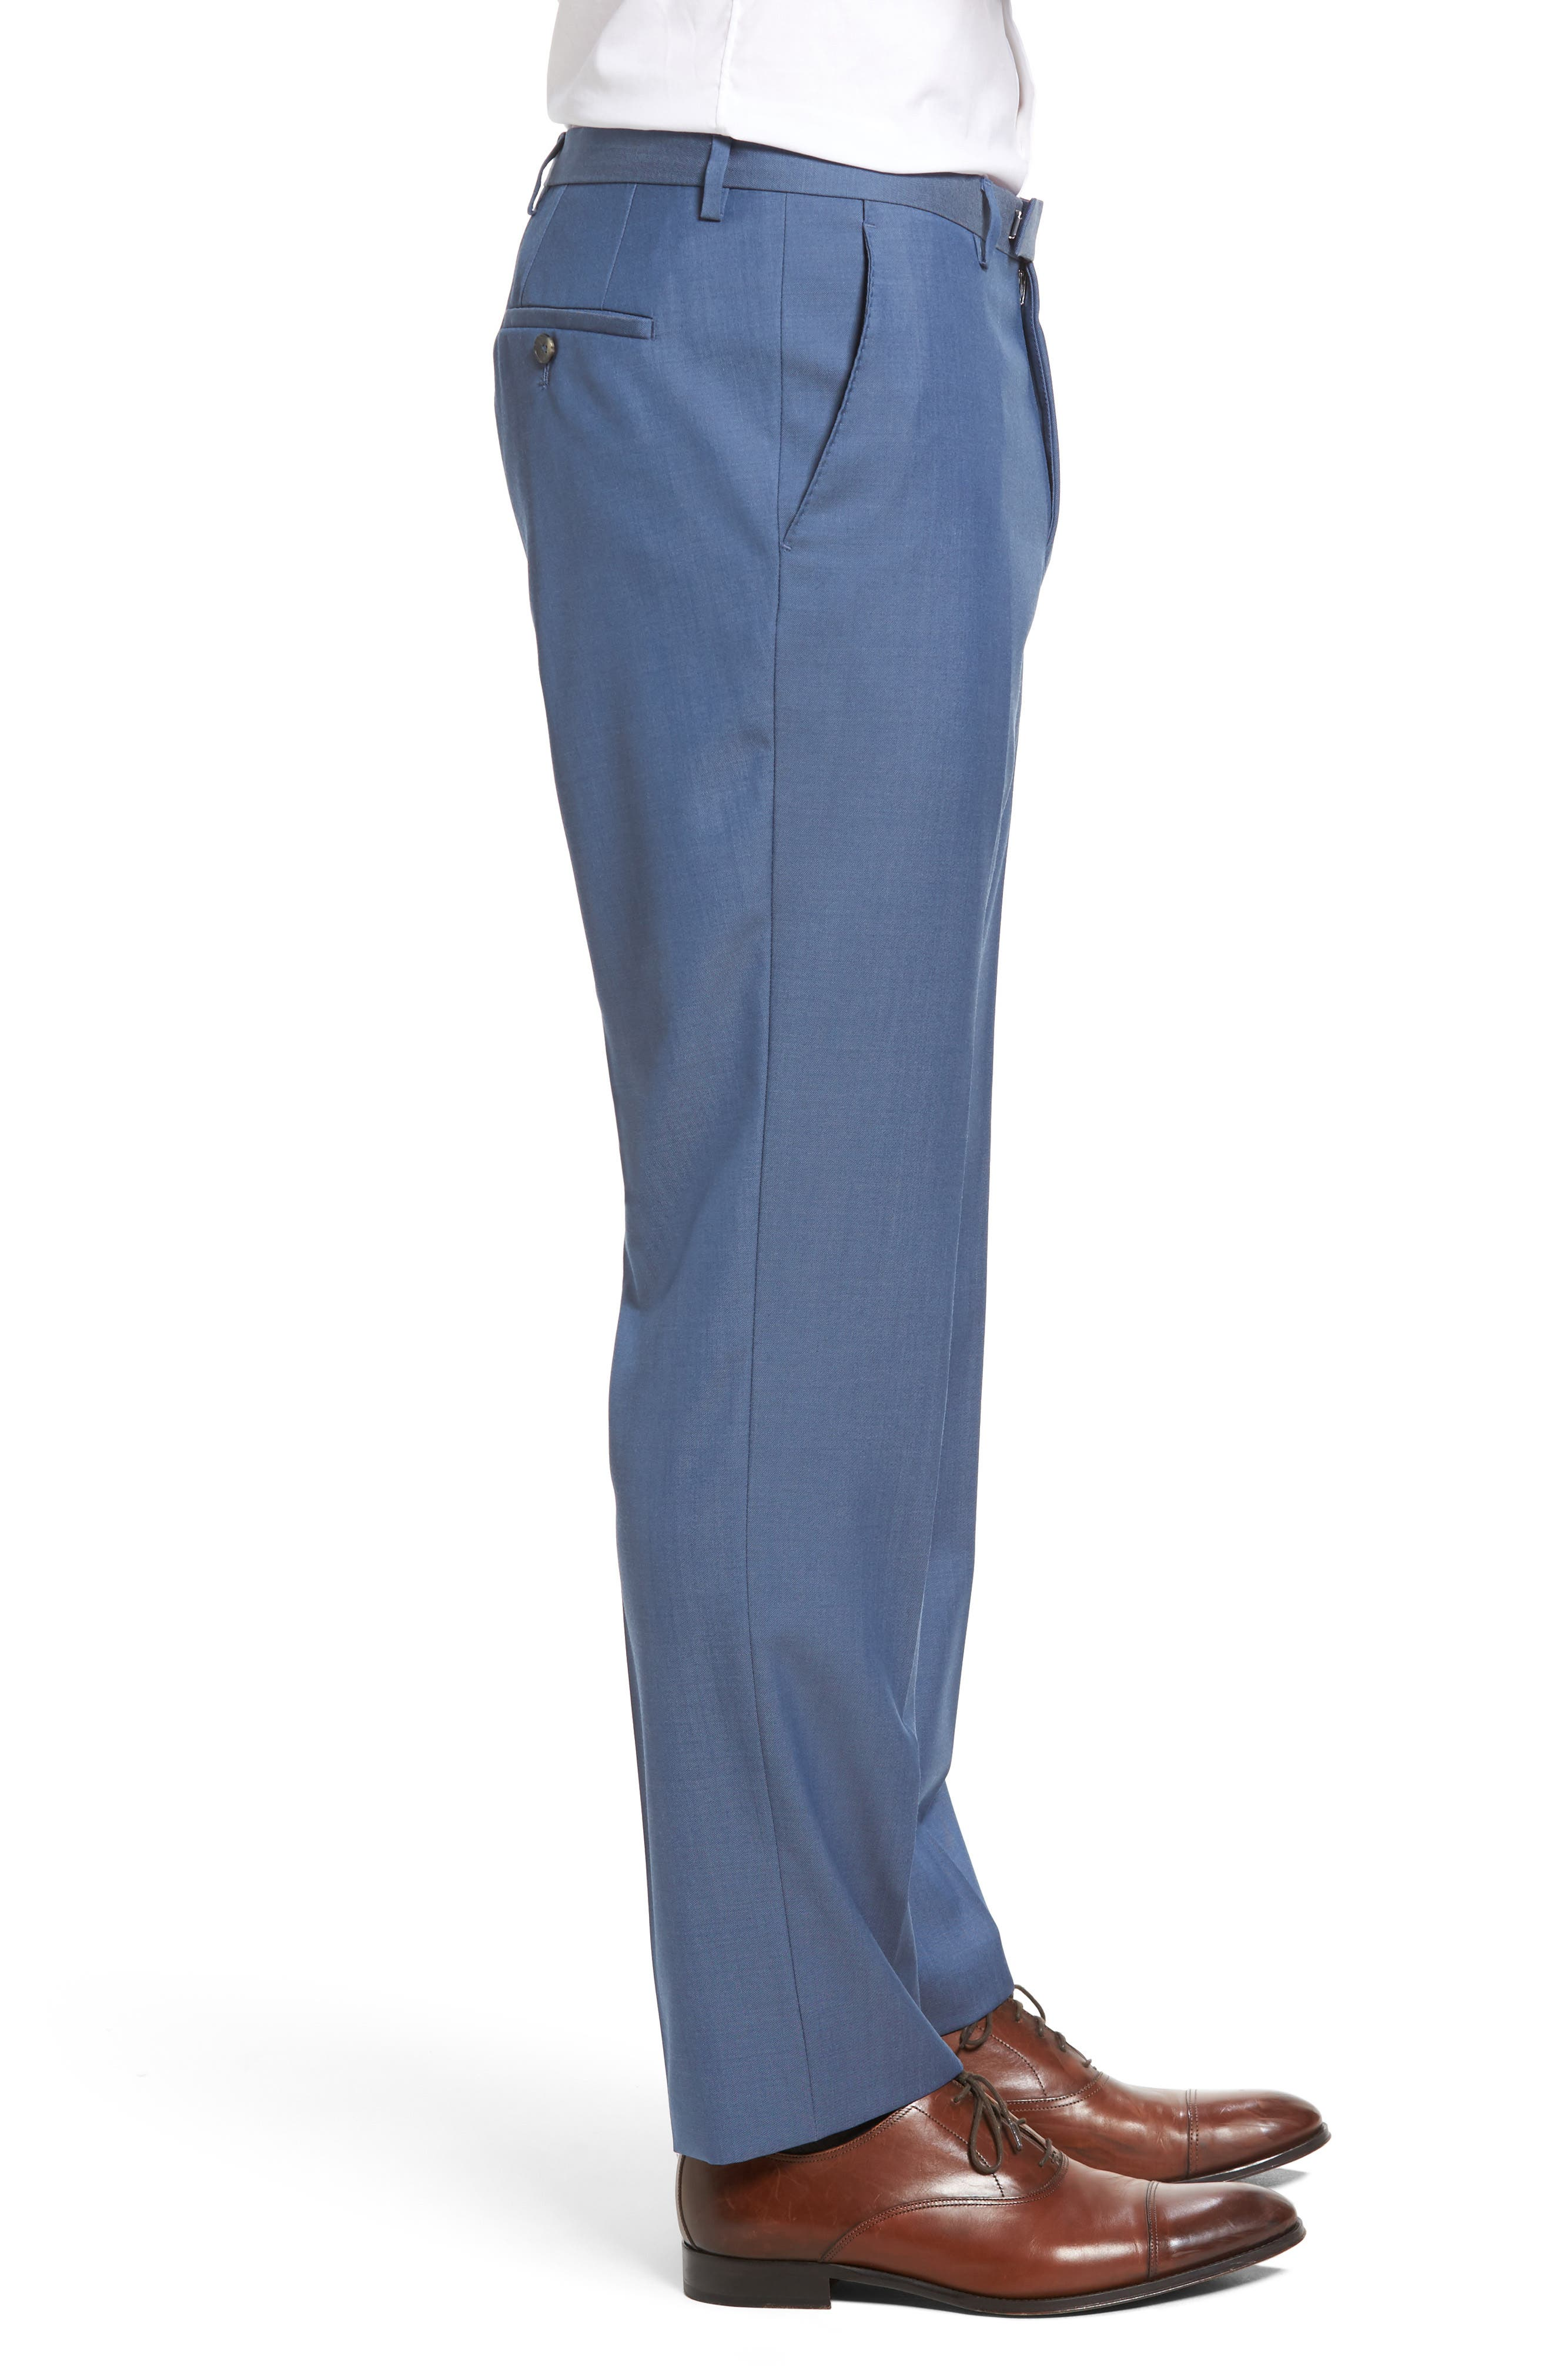 Leenon Flat Front Regular Fit Solid Wool Trousers,                             Alternate thumbnail 3, color,                             Light Blue